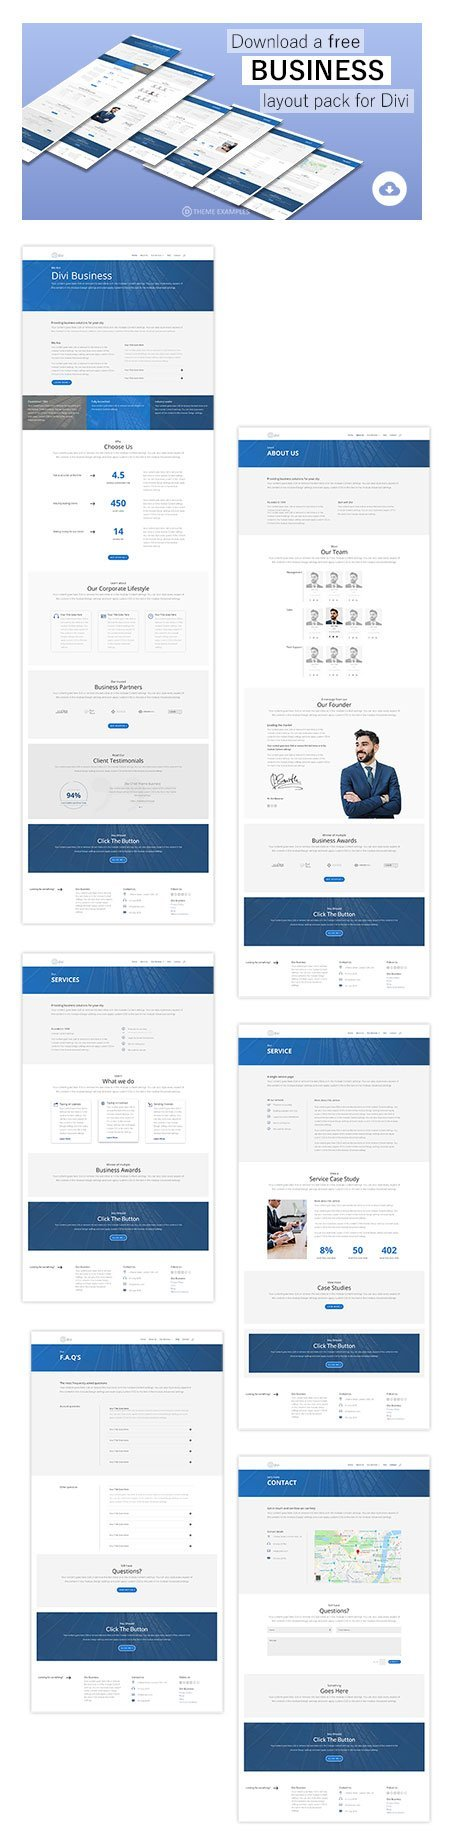 divi business layout pack